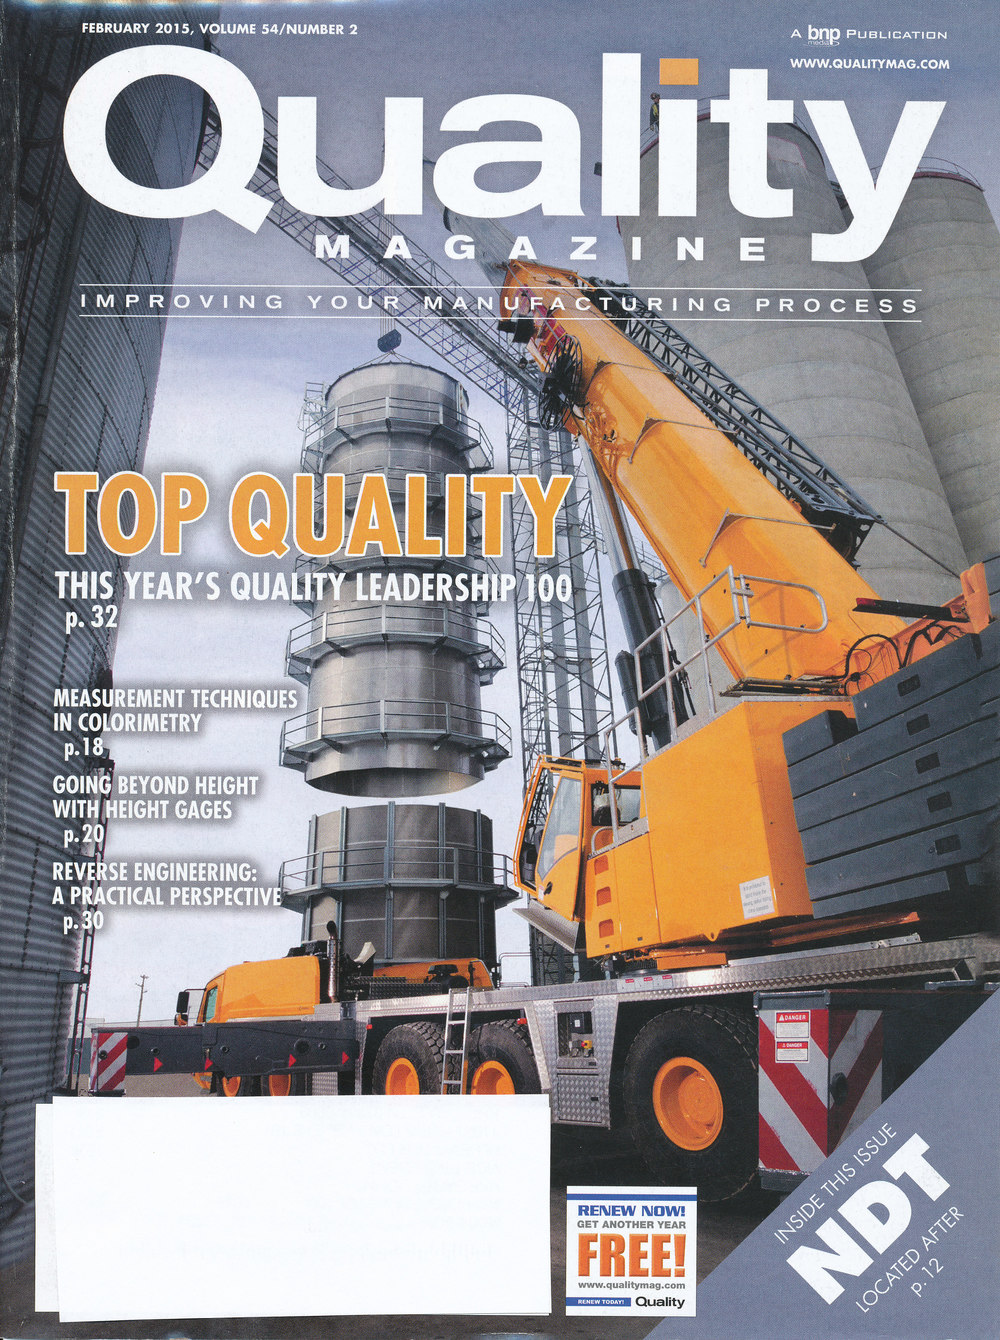 Content Marketing - Article - Quality Mag - Feb 2015